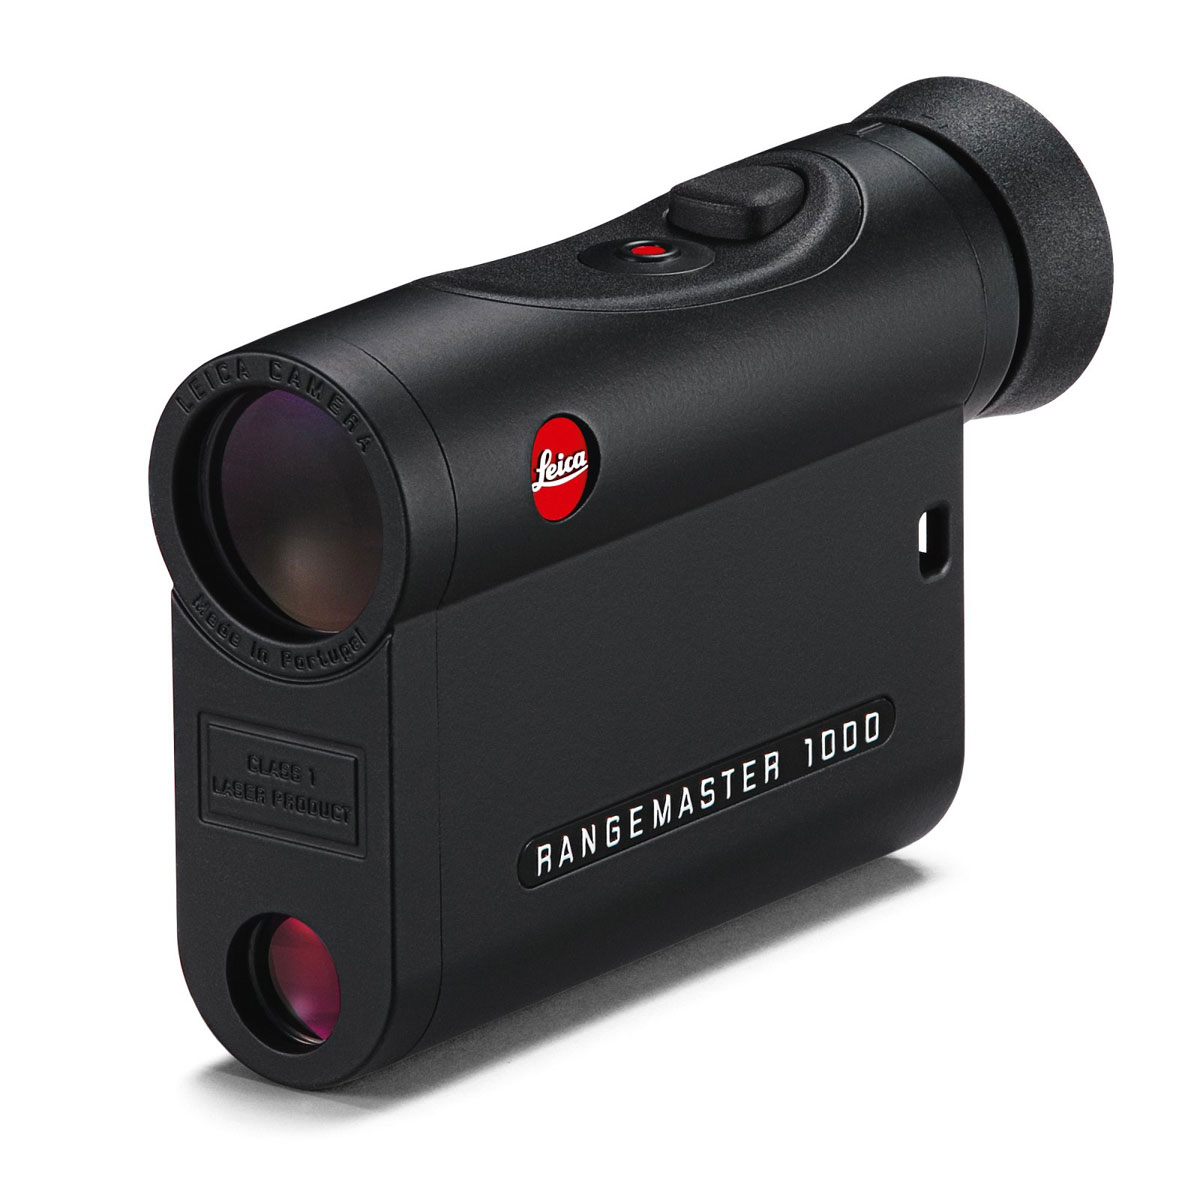 The Rangemaster CRF 1000-R calculates automatically, based on the linear distance and the angle, the equivalent distance that the projectile would travel when fired horizontally (equivalent horizontal distance)